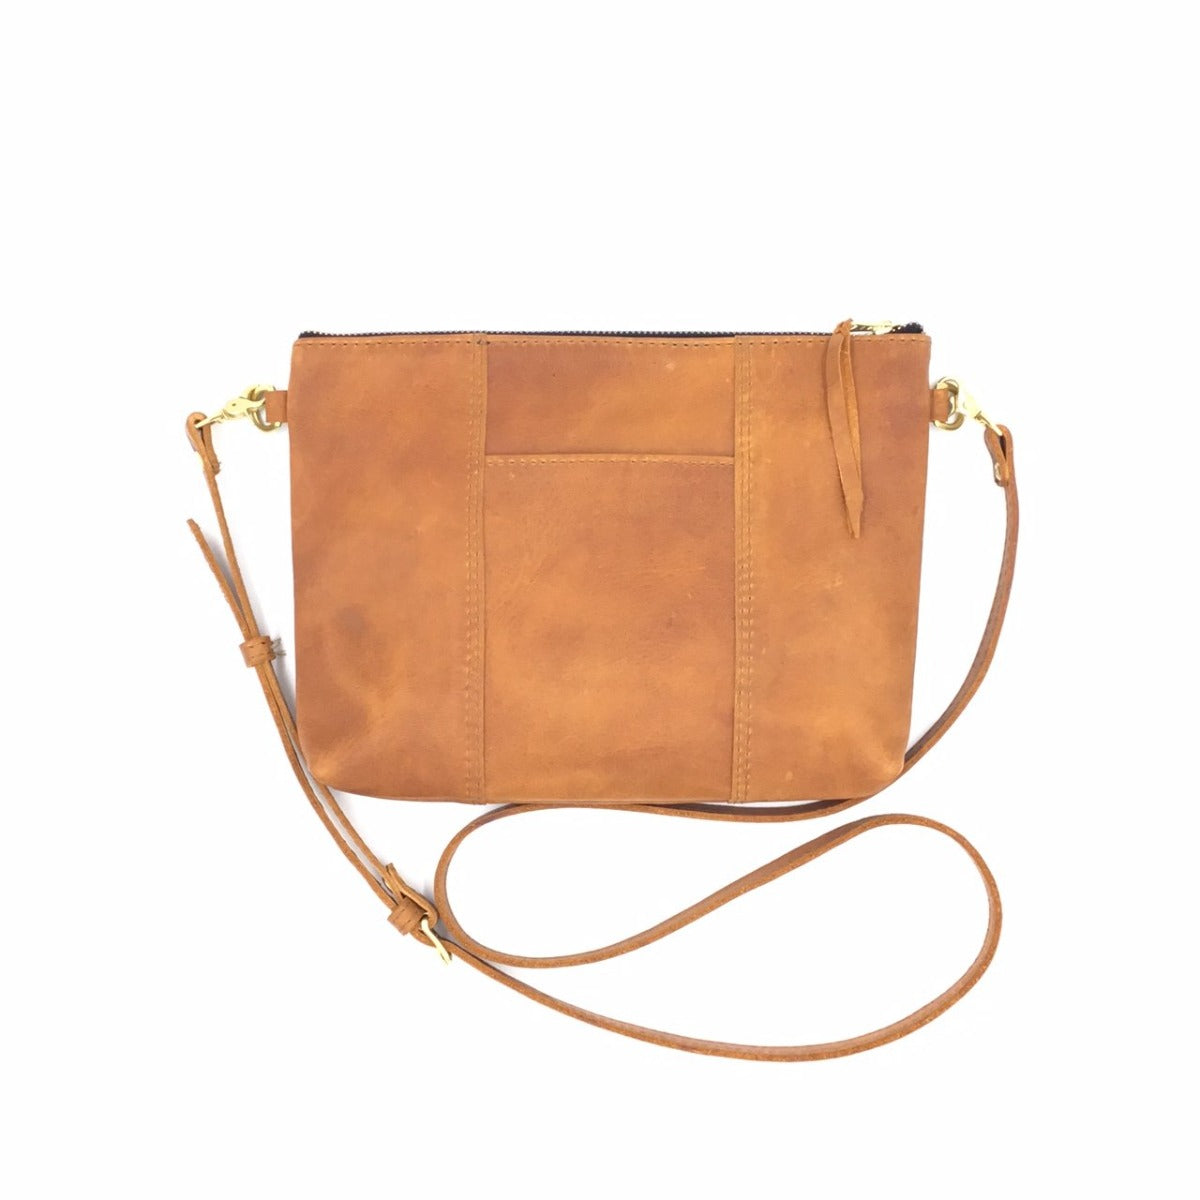 "NEW STYLE! Antigua Tan Leather Cross Body Clutch with front pocket  (1"" base)"